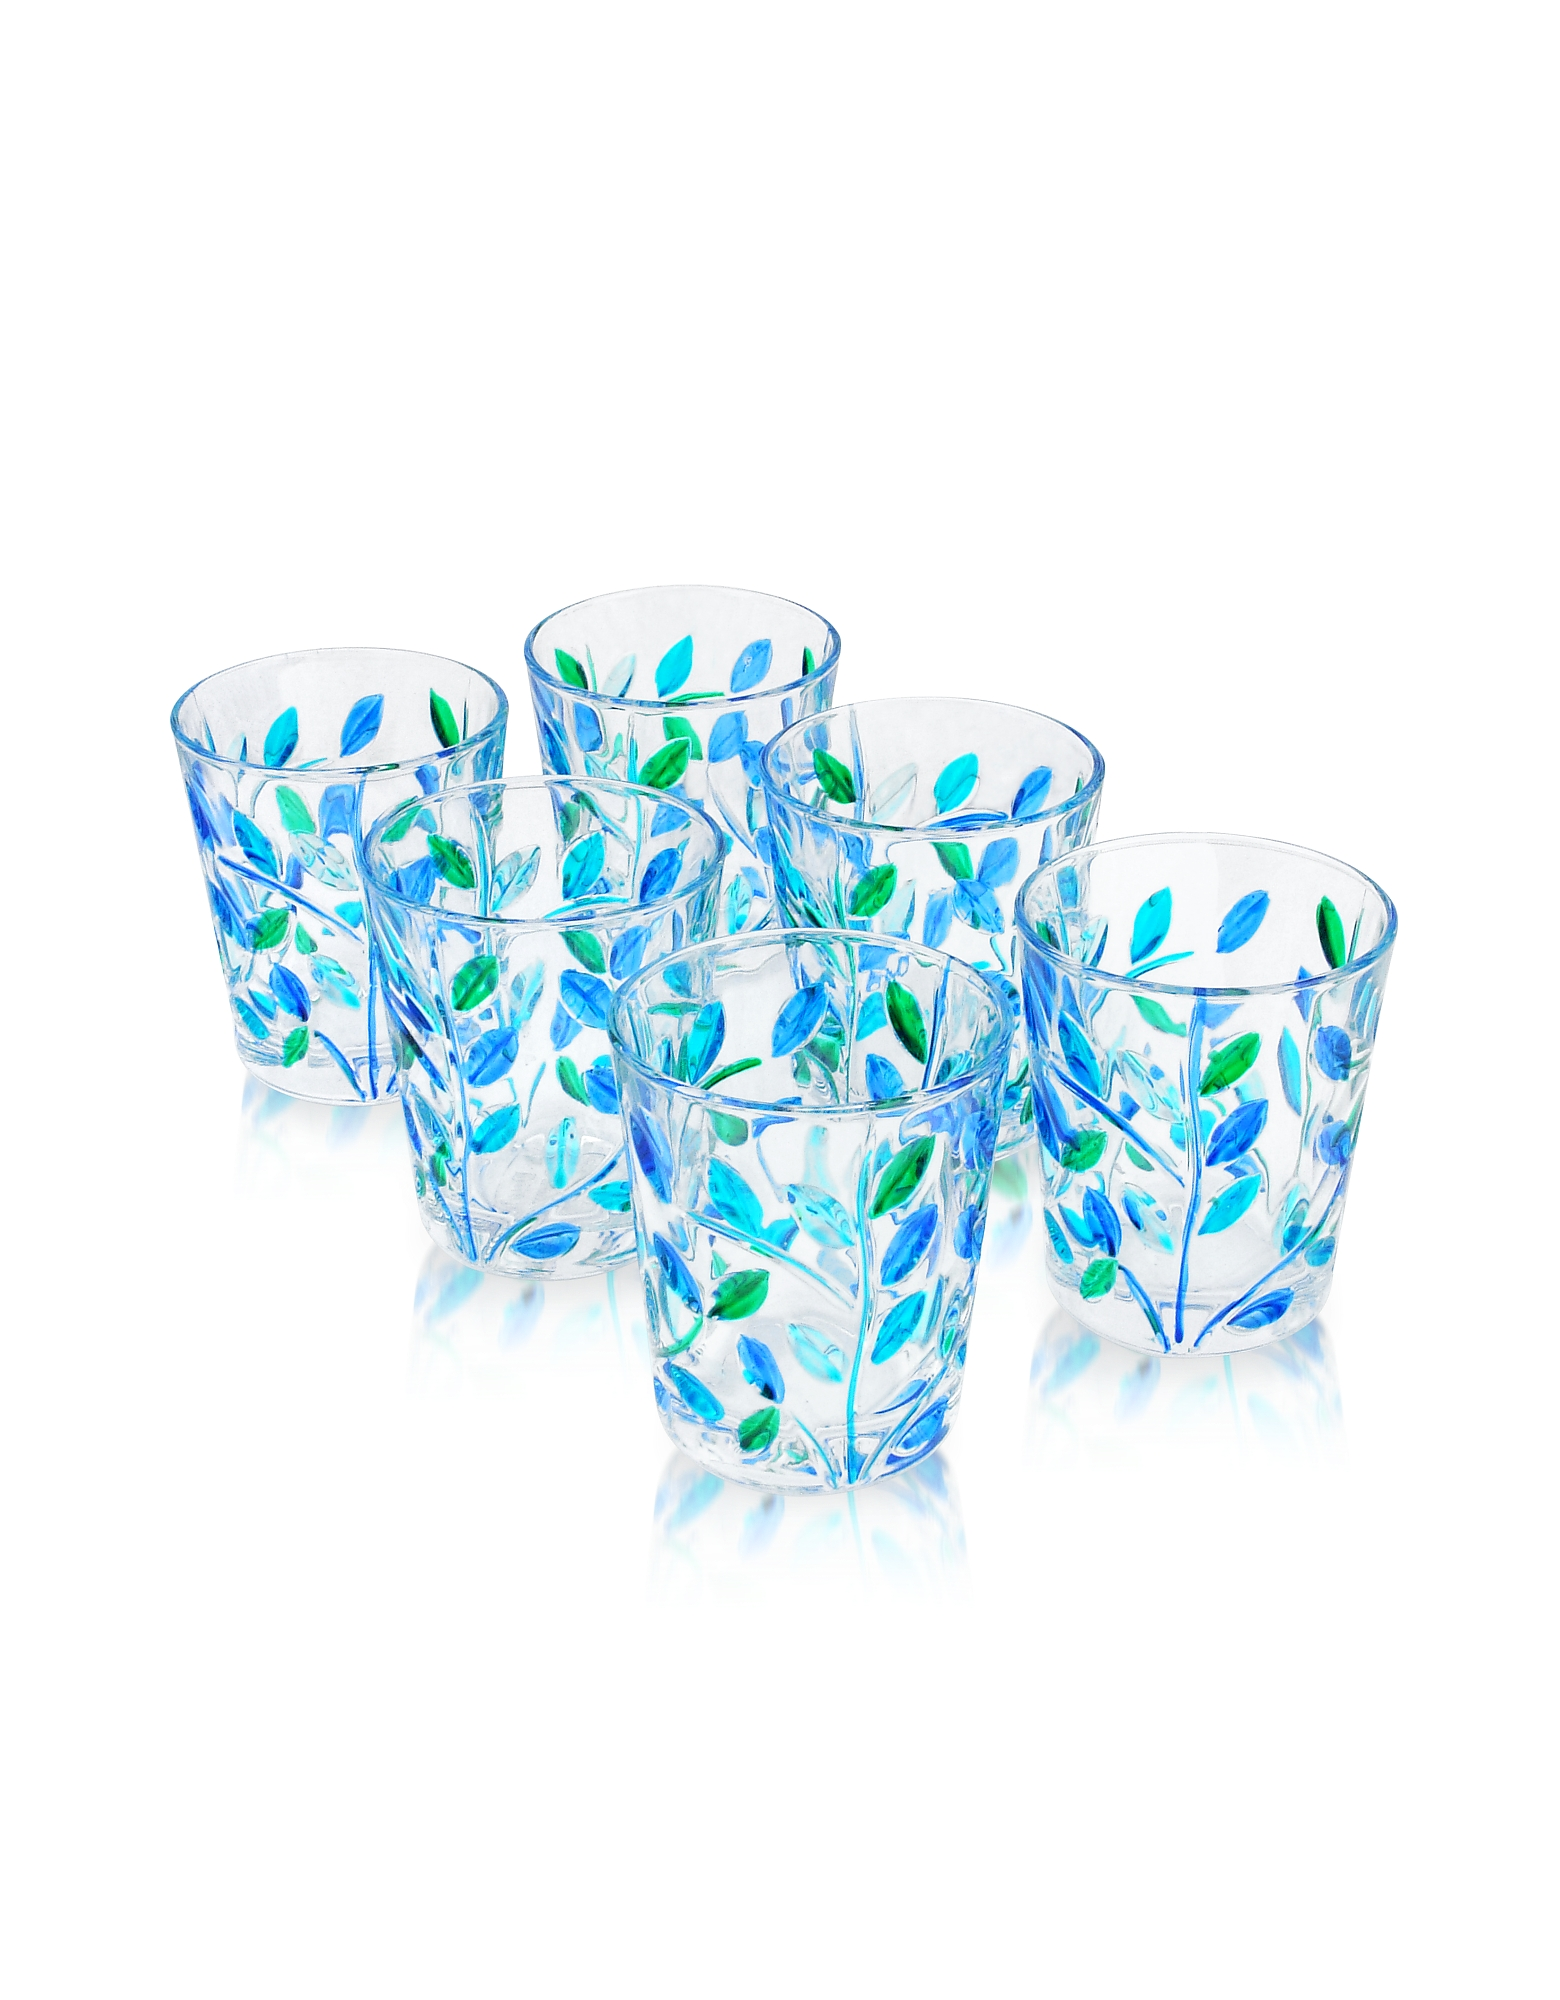 Due Zeta Kitchen & Dining, Sospiri - Blue Hand Decorated Murano Shot Glass Set of Six